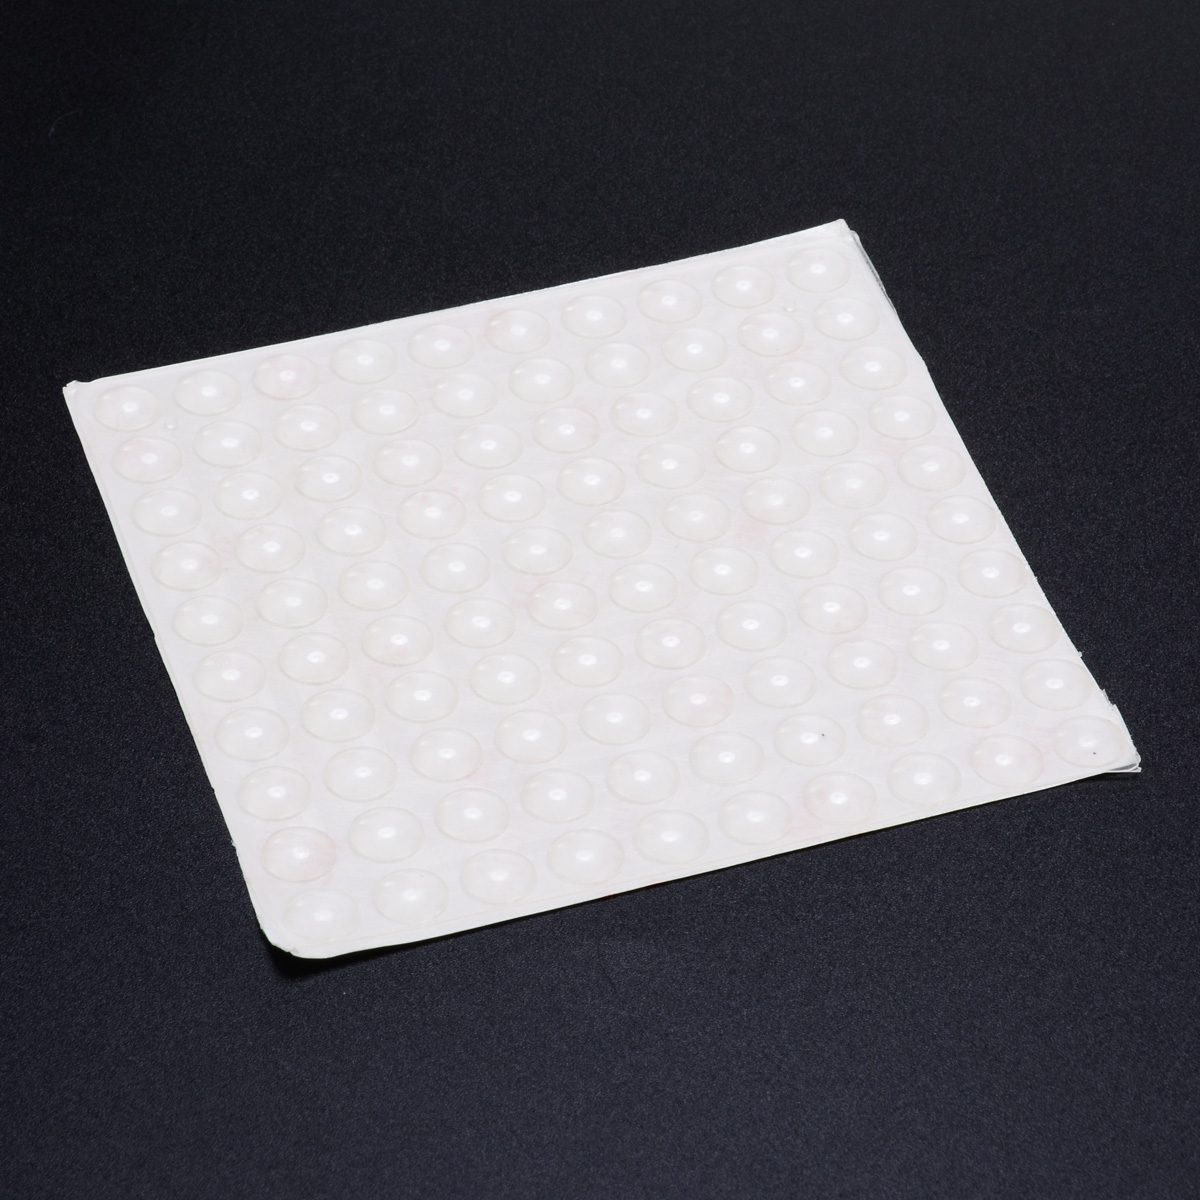 100pcs Mayitr Self Adhesive Silicone Feet Bumpers Stops Clear Cabinet Door Buffer Pads Furniture Hardware Tools